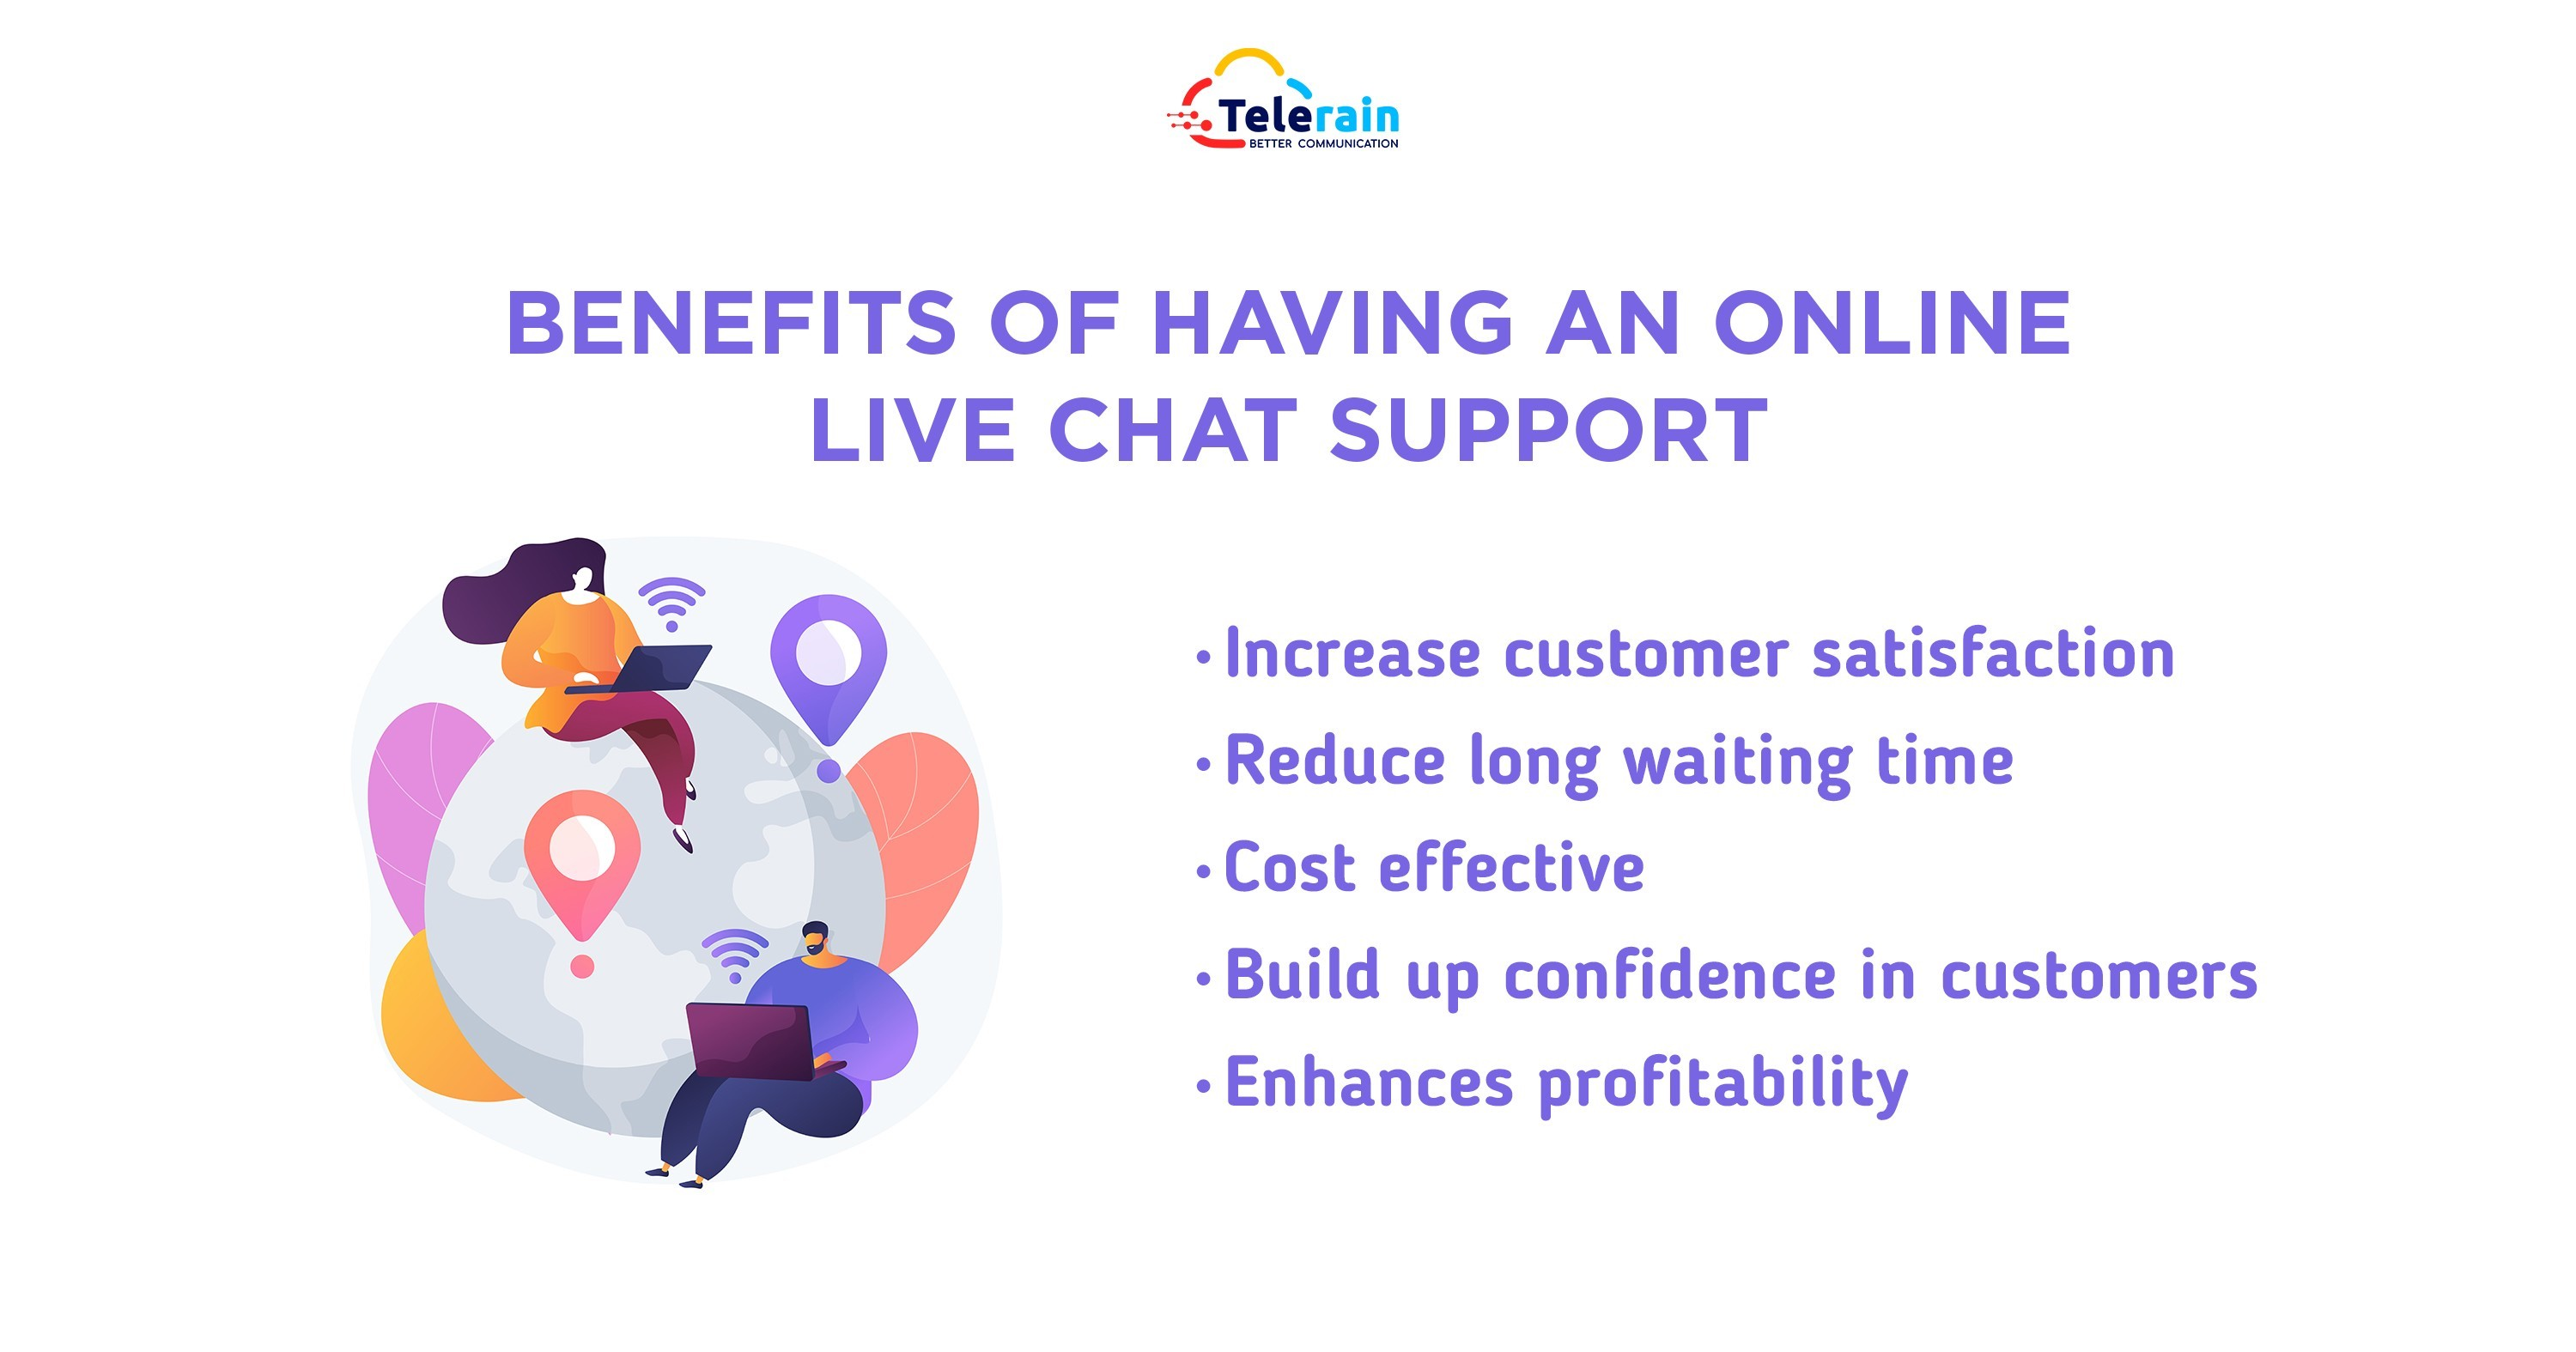 Benefits of having an online live chat support